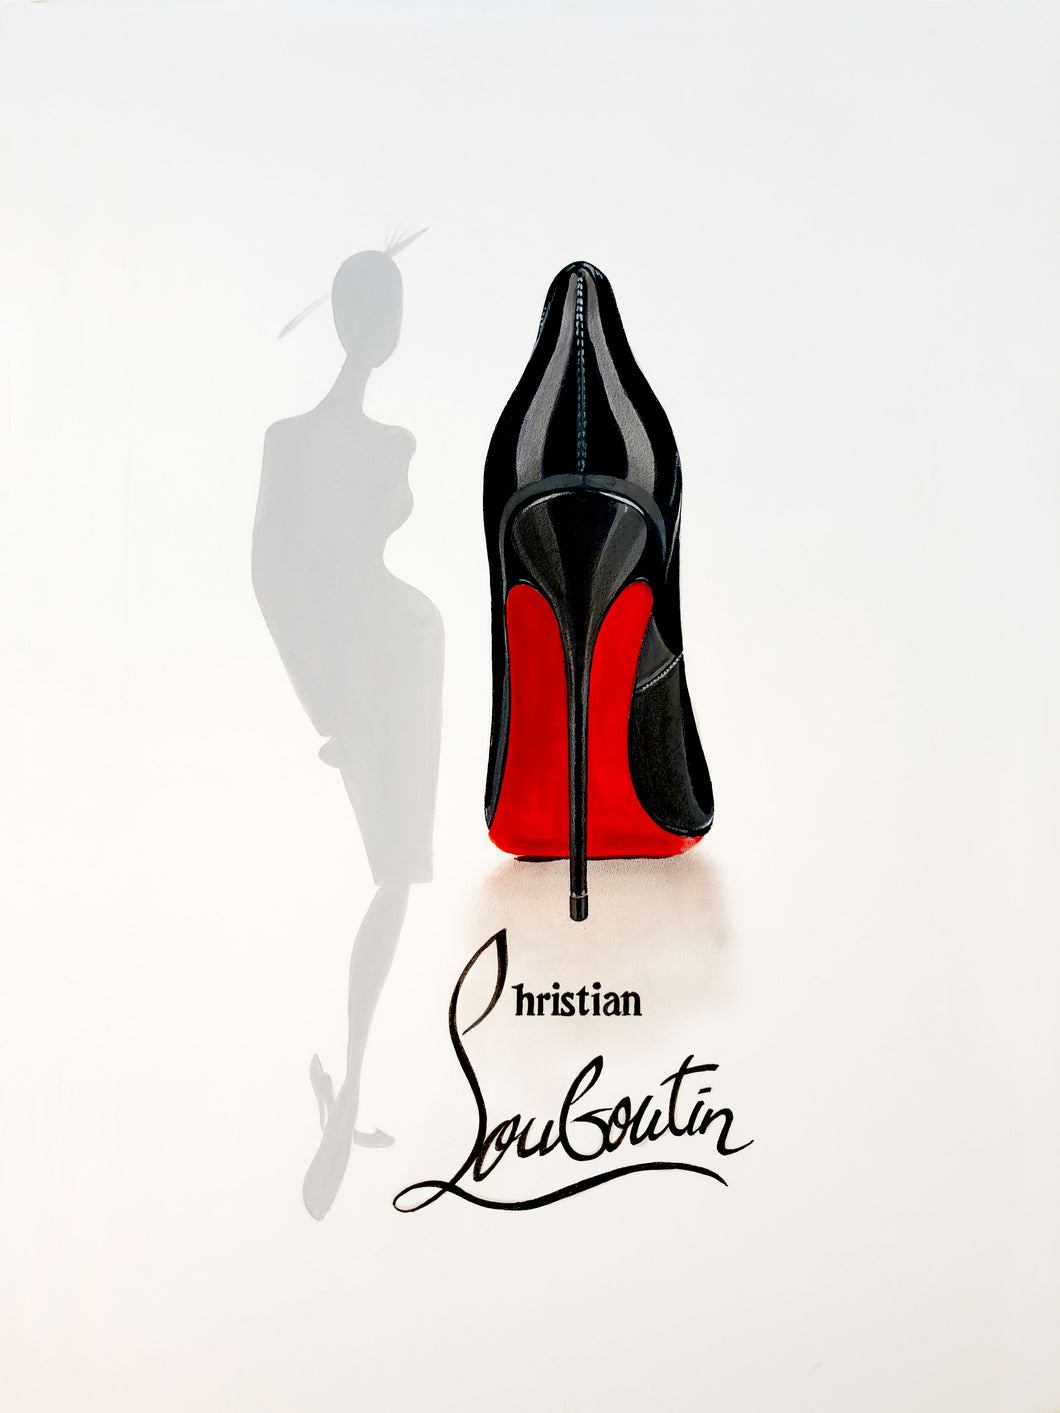 53d6d732abad Christian Louboutin Limited Edition Print – Terry Kneeshaw Art